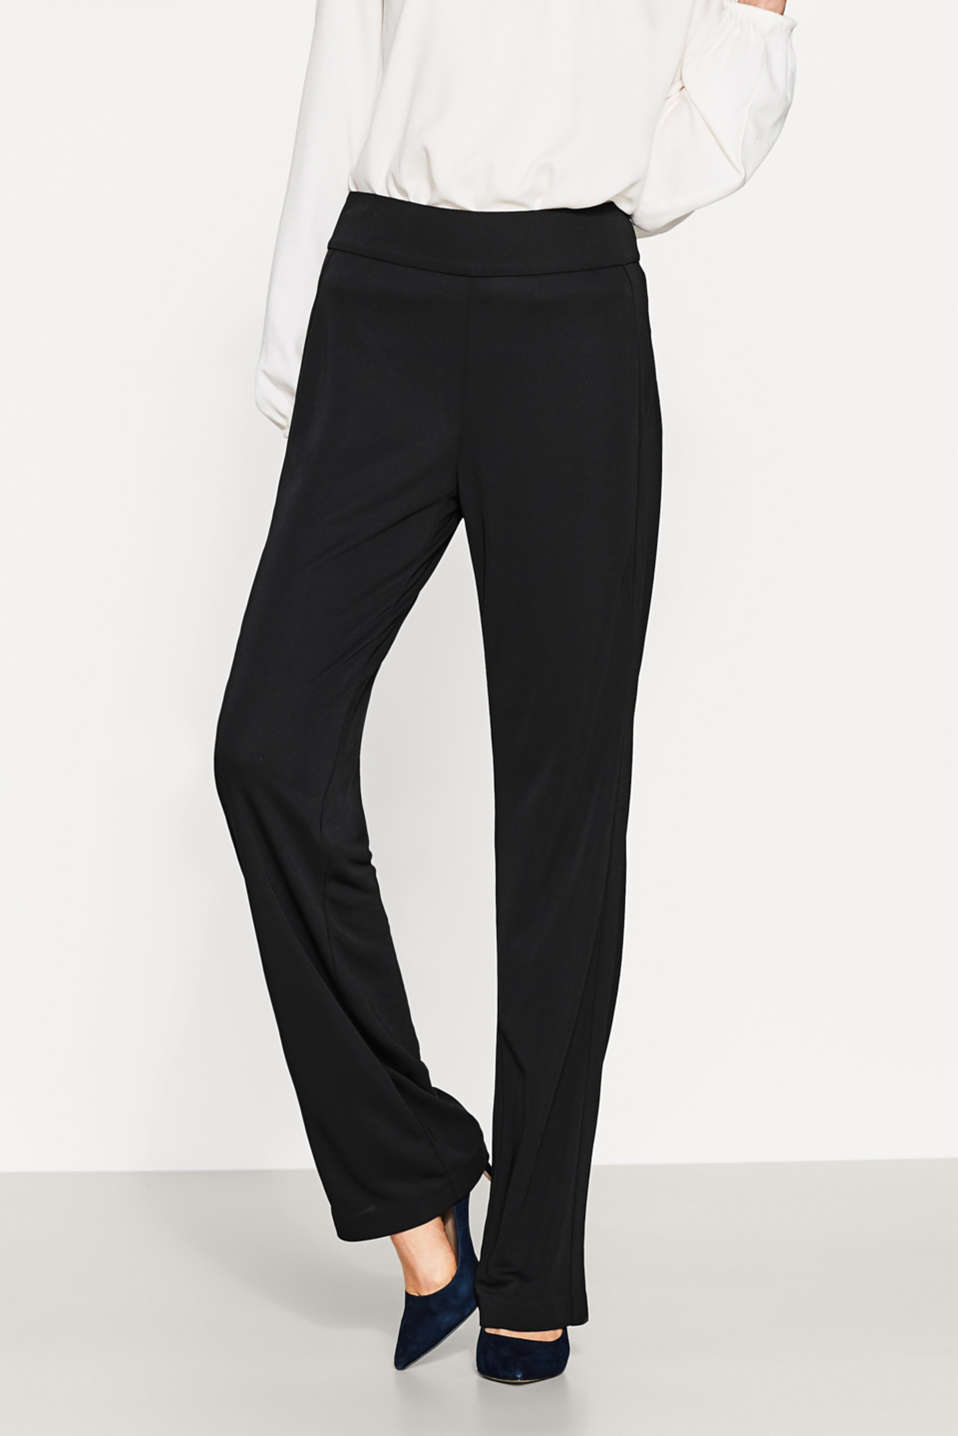 Esprit - Easy-care trousers in sophisticated jersey